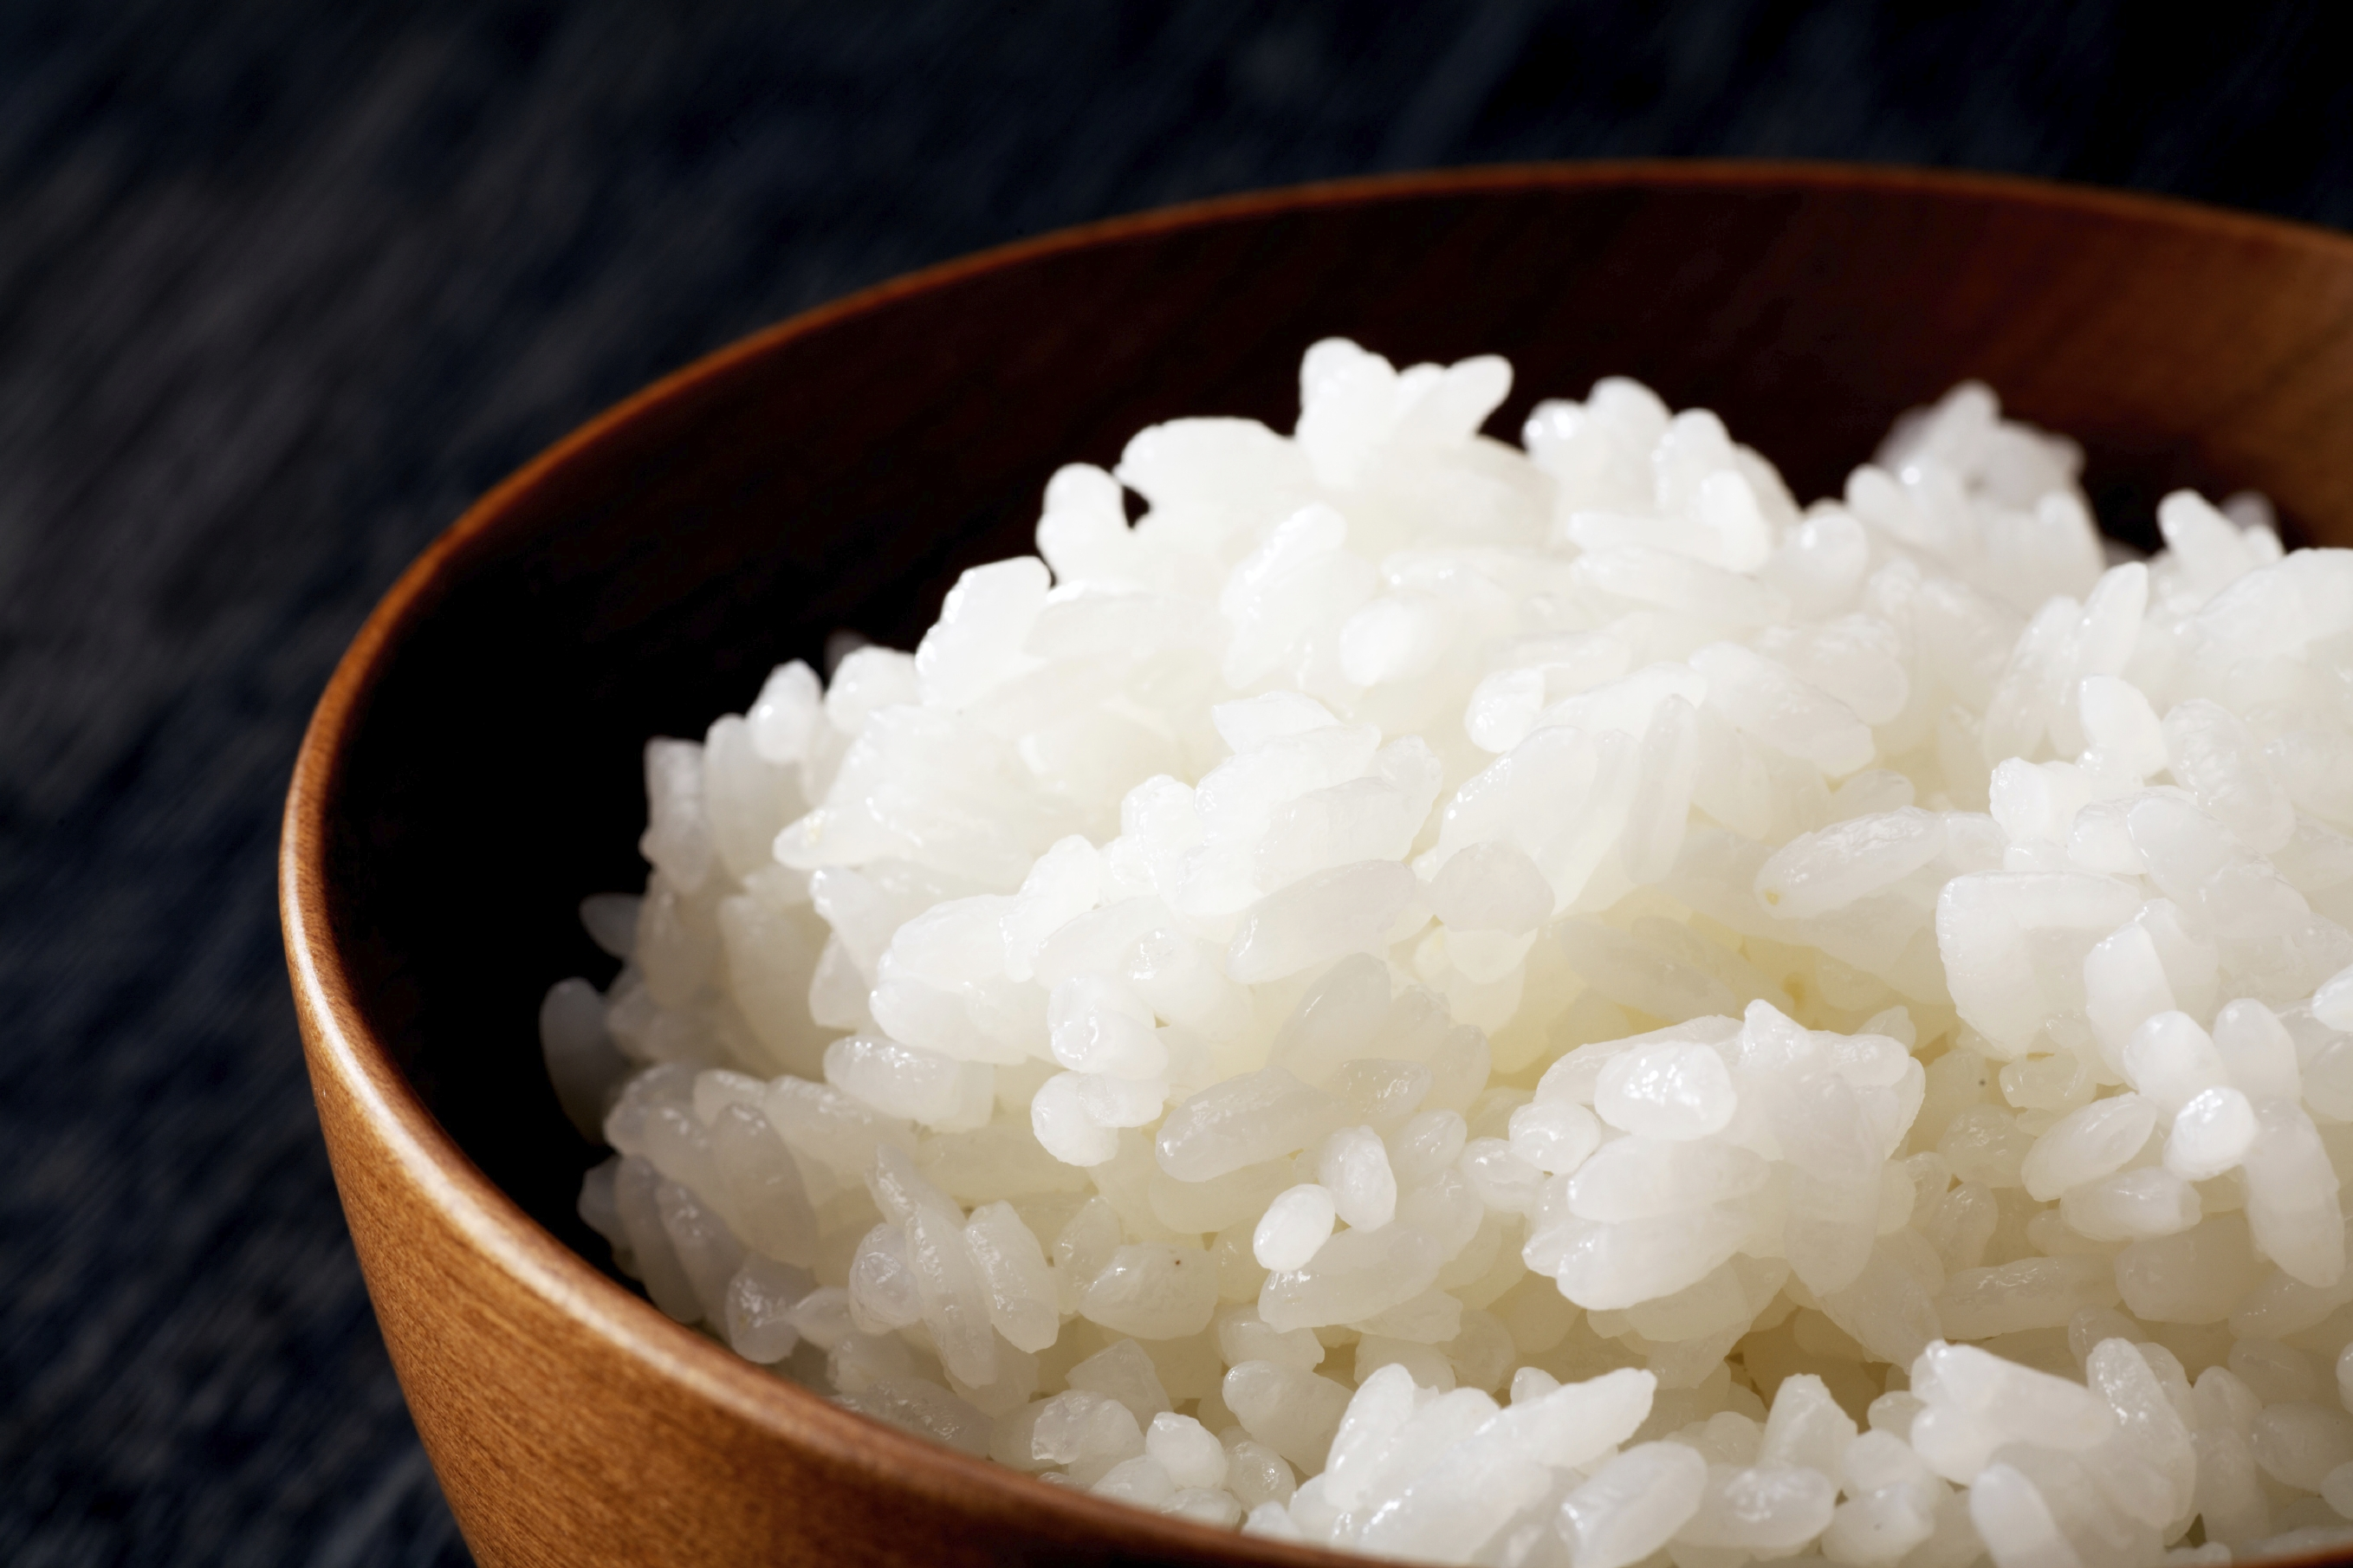 Adding coconut oil to your rice could cut calories in half